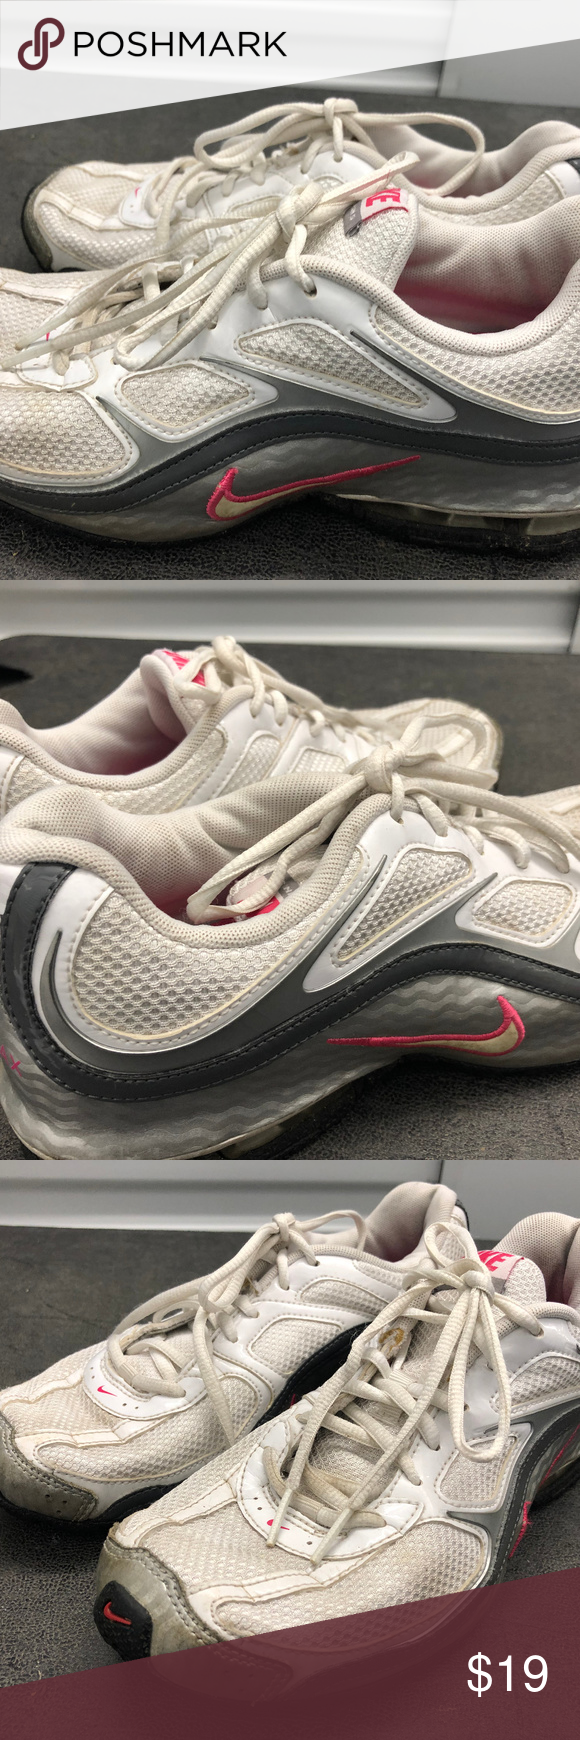 63dfc2c0d9cb0 Nike Reax Run 5 Women Silver Pink White Sneakers Nike Reax Run 5 407987-116  Women Silver Pink White Training Running Sneakers Size US 7.5 are good  condition ...